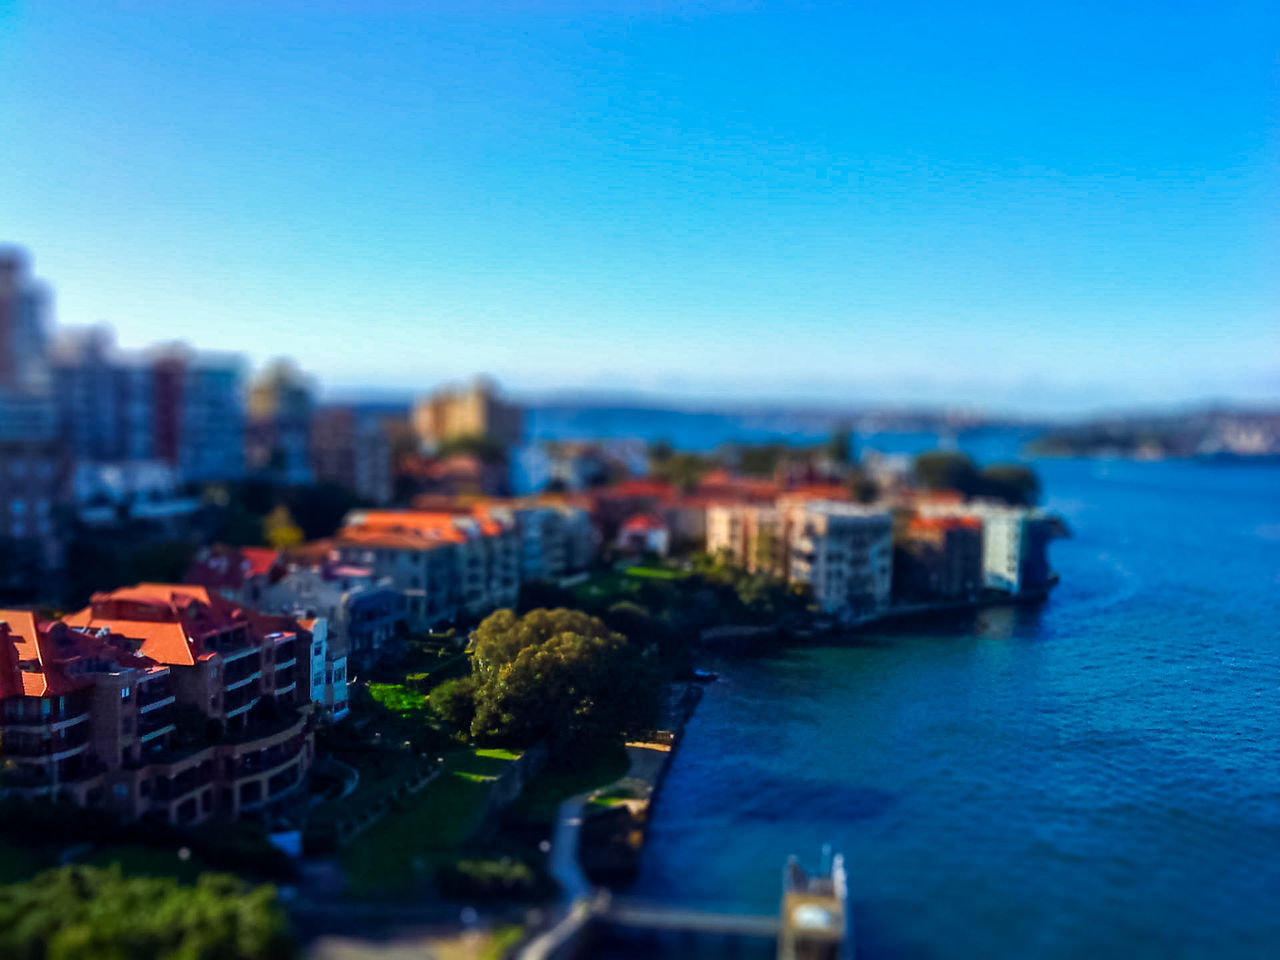 Tilt Shift Image Of City By Sea Against Clear Blue Sky